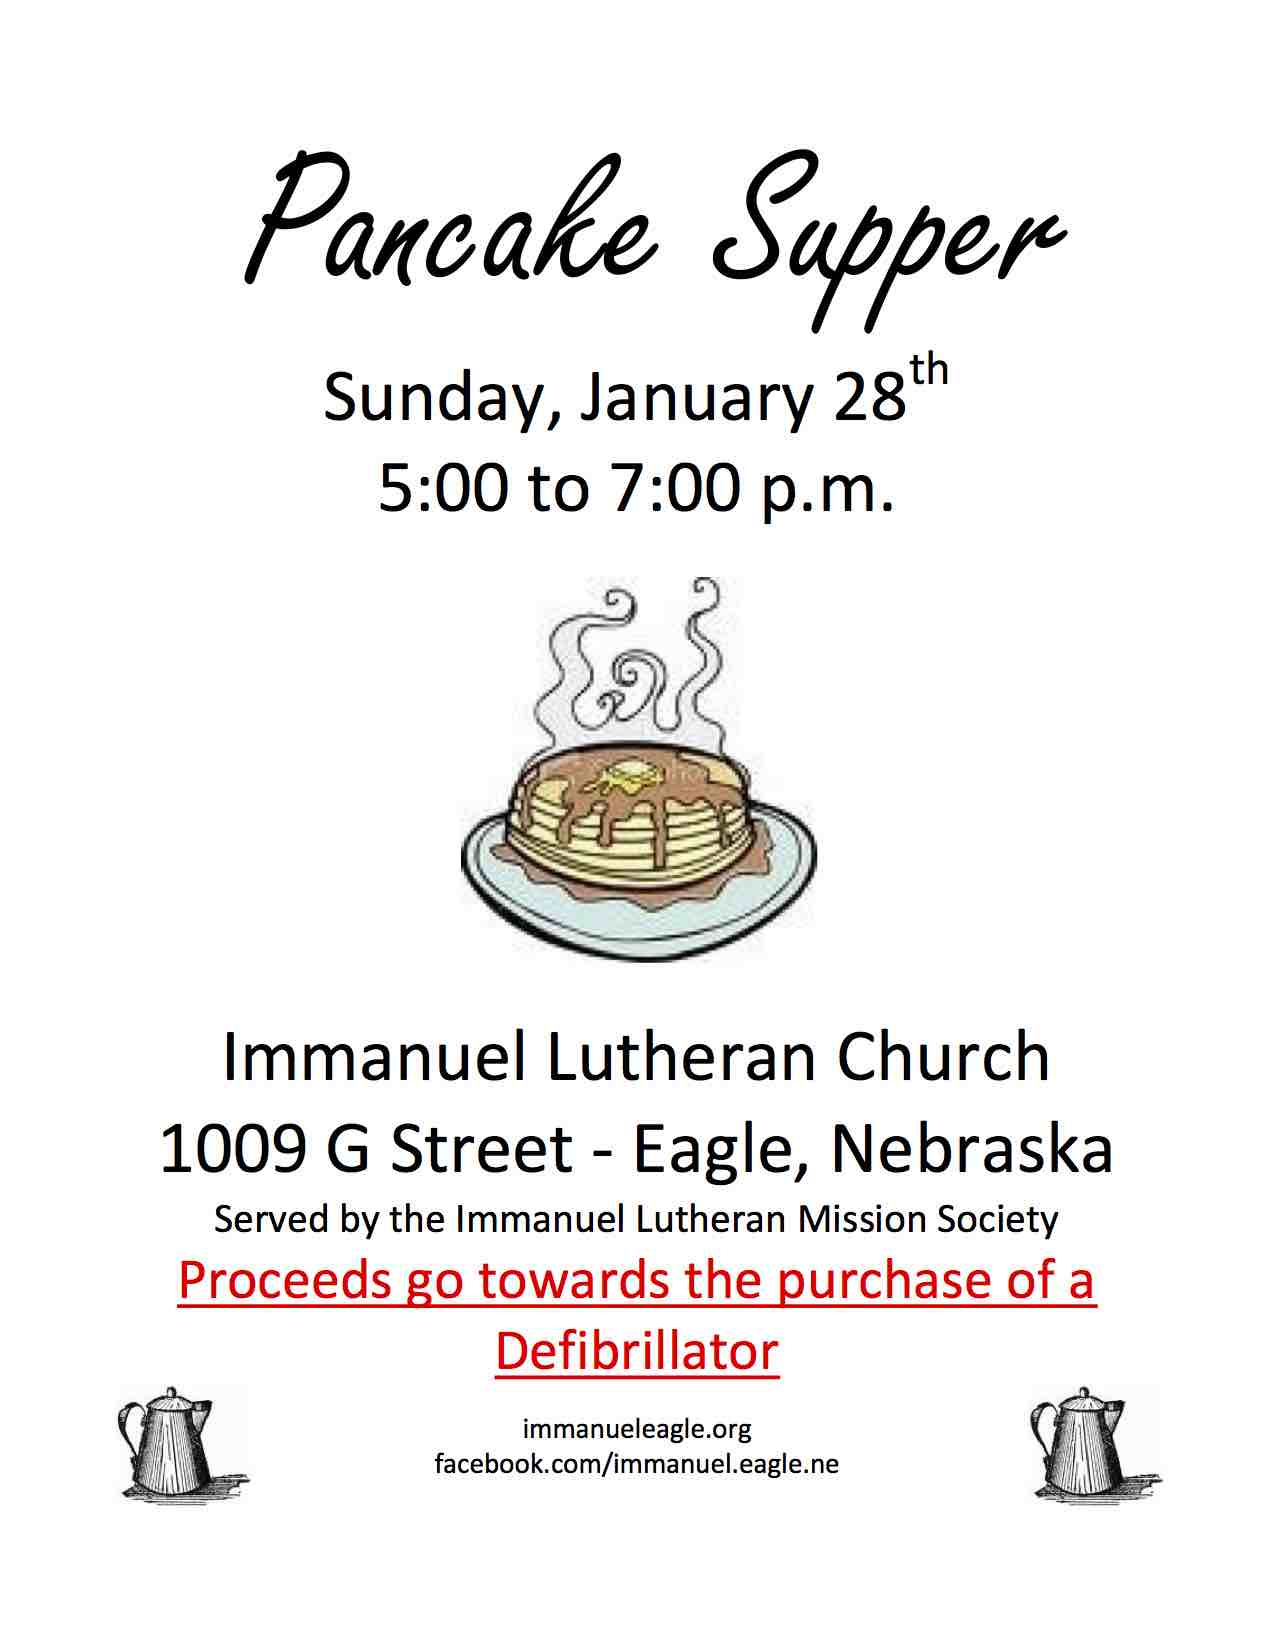 Pancake Supper flyer